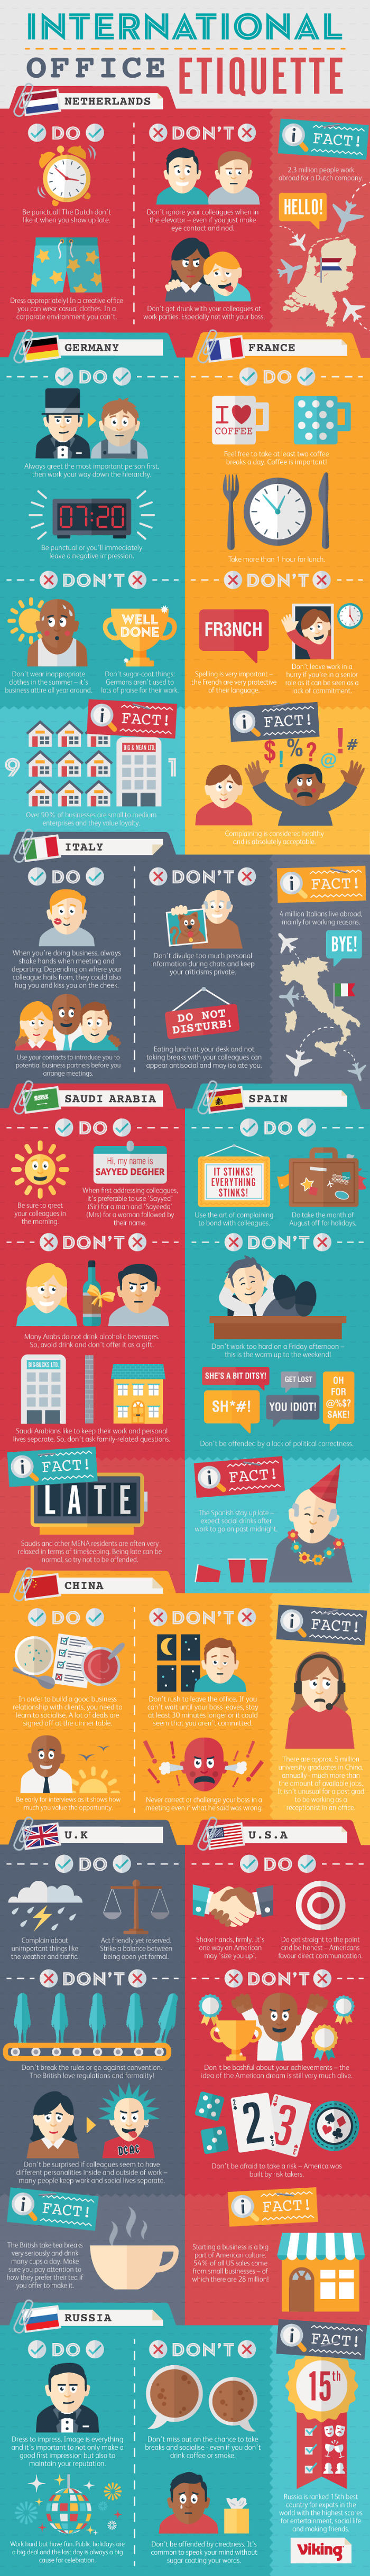 A Guide To International Office Etiquette